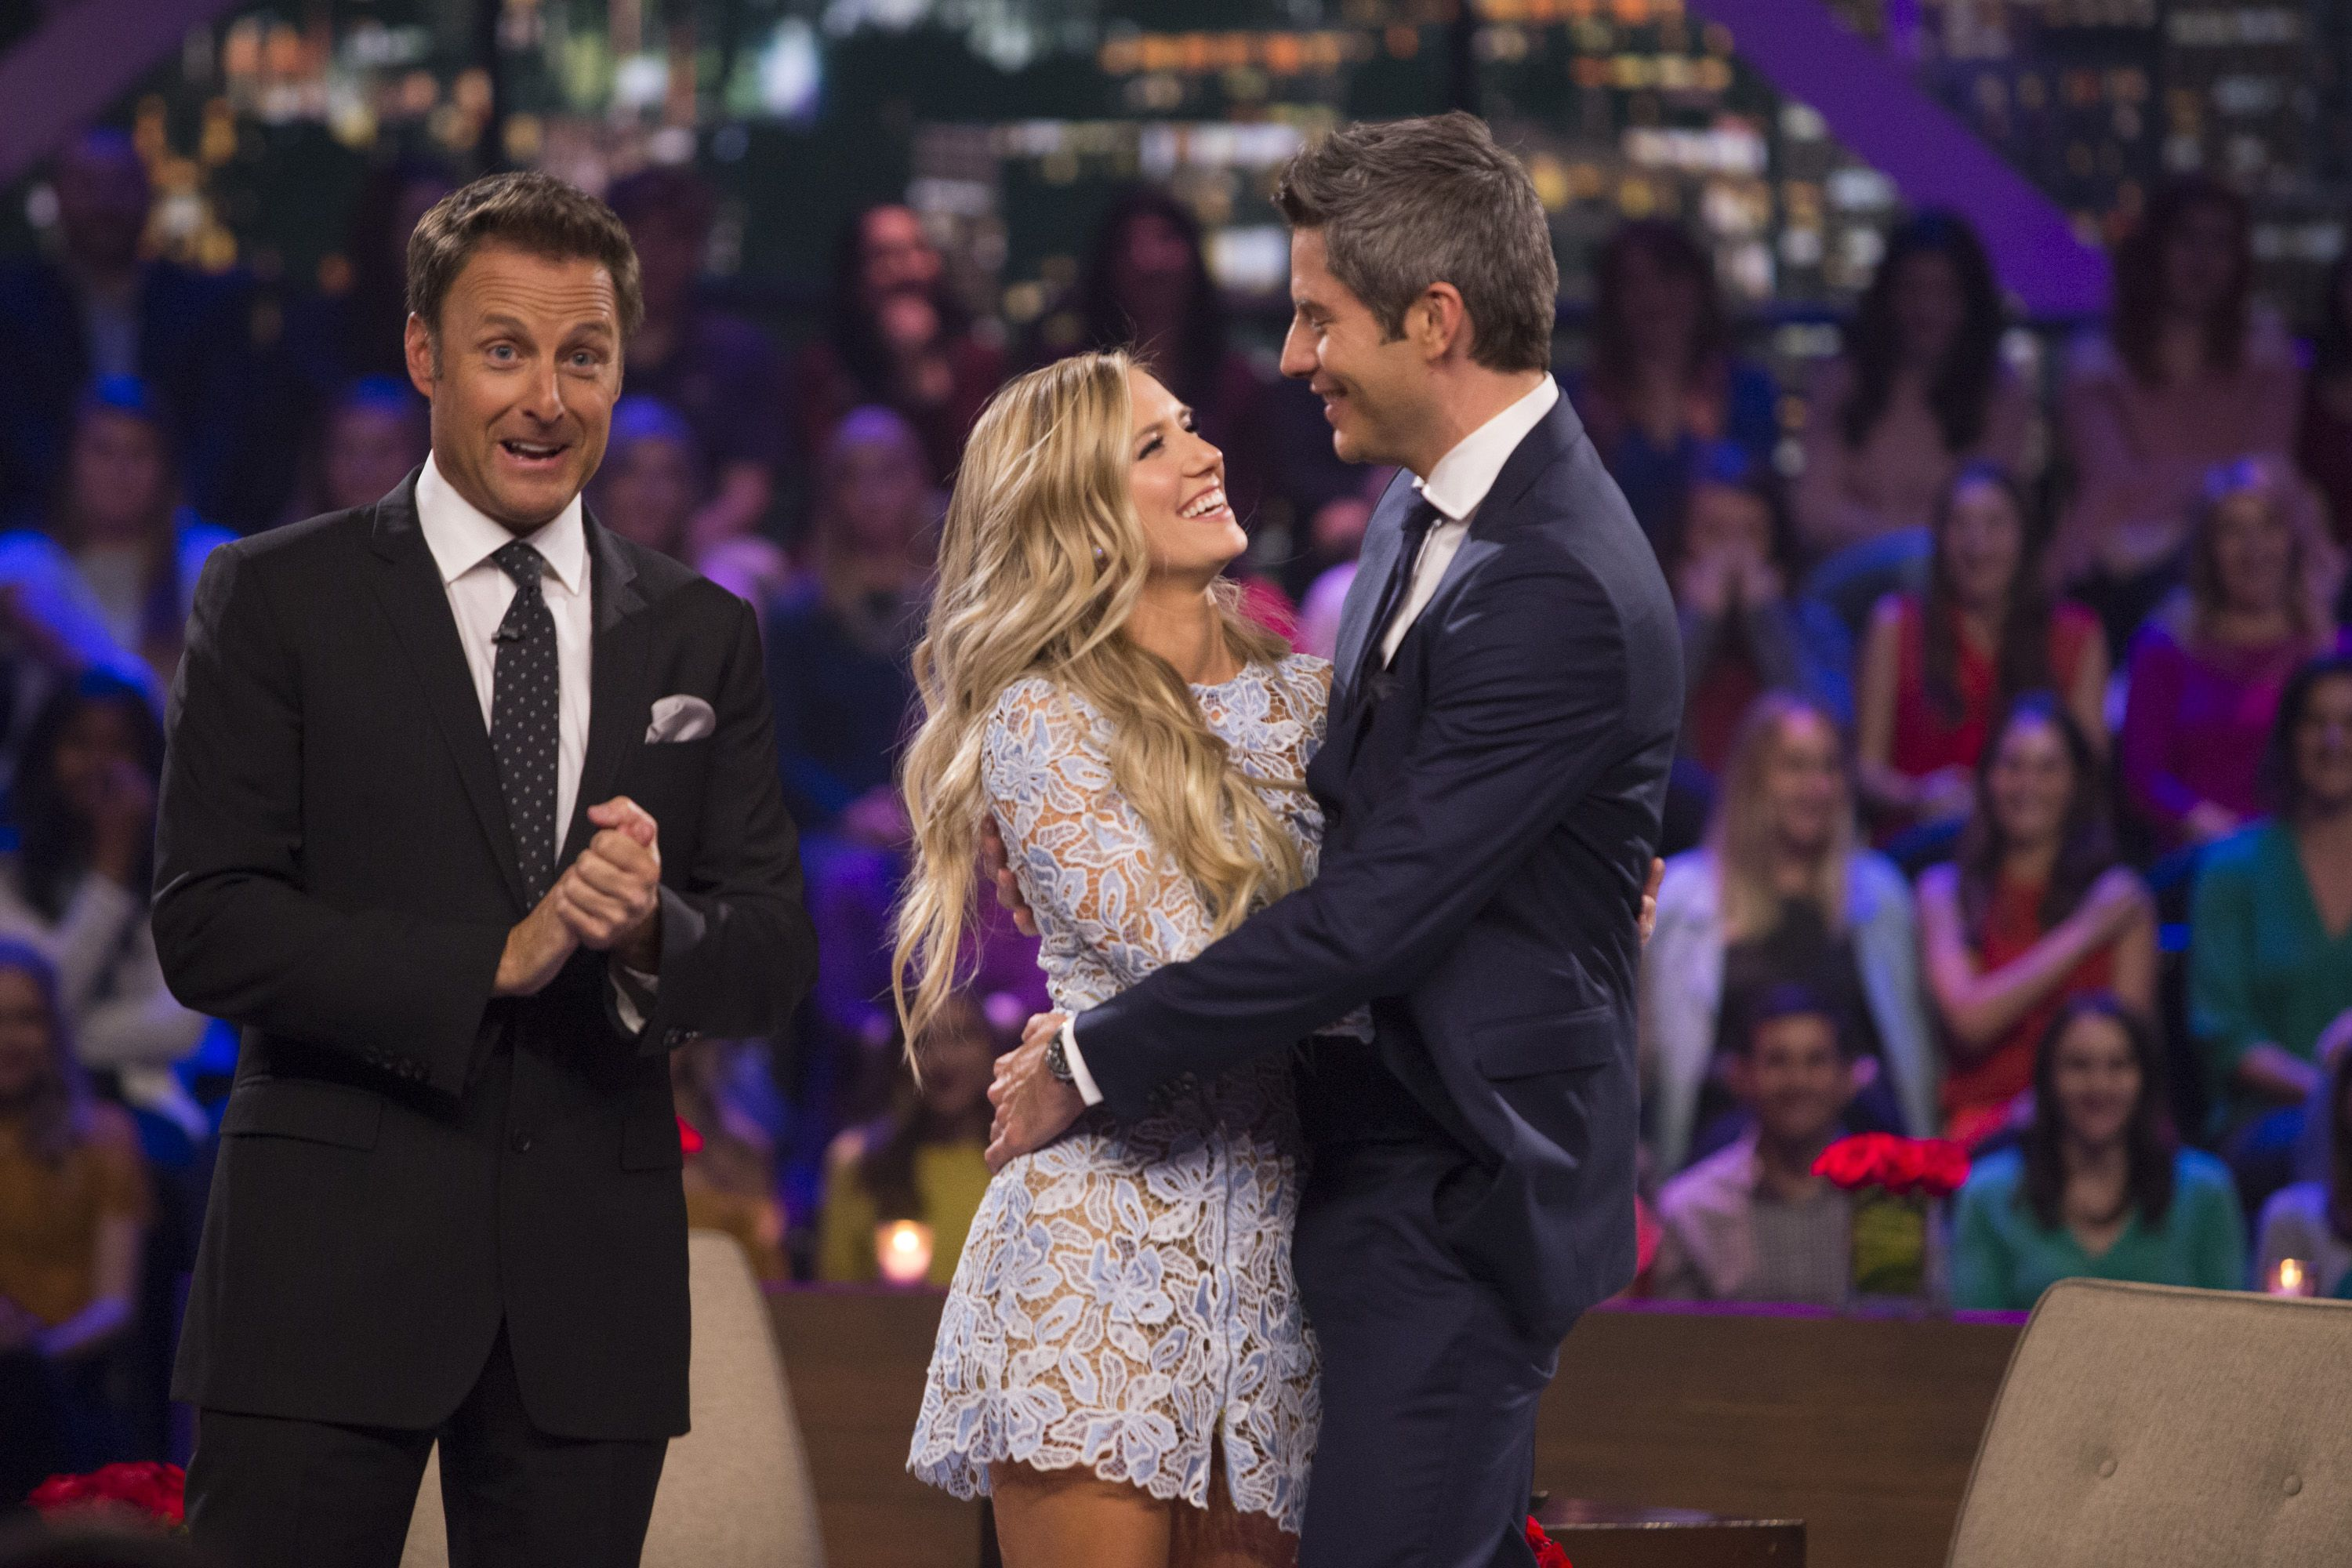 The Most Controversial 'Bachelor' and 'Bachelorette' Moments of All Time